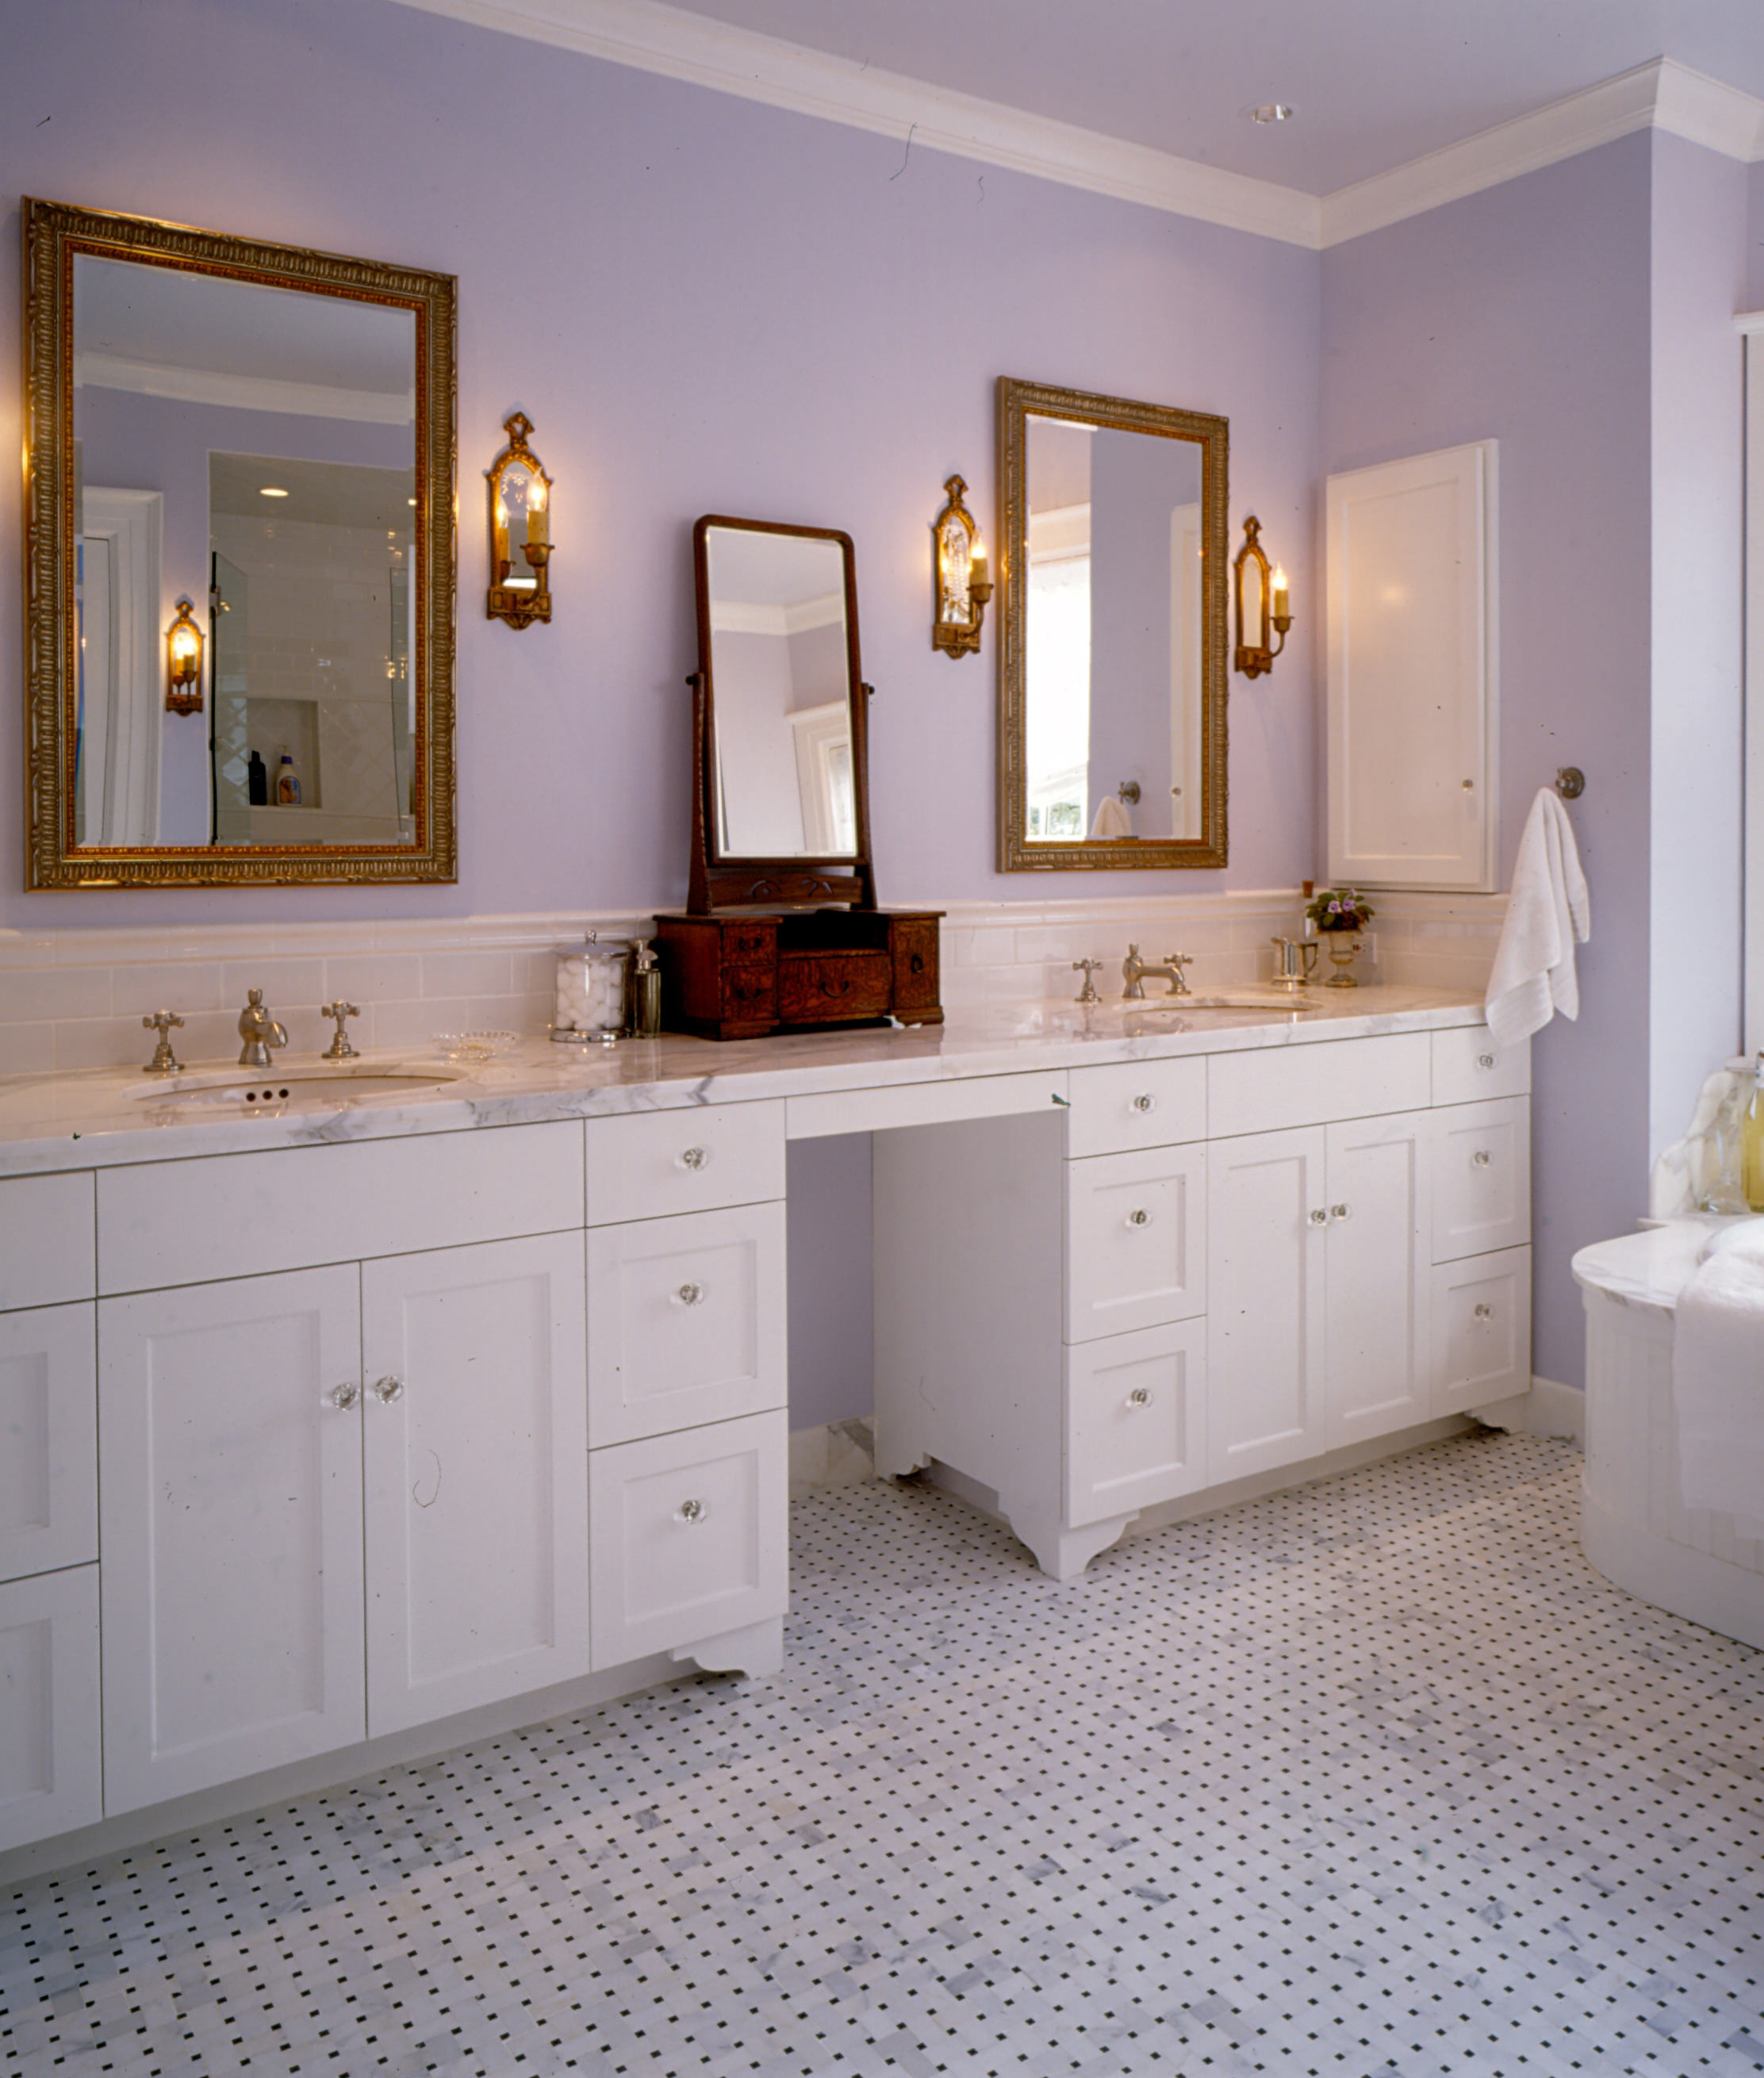 6 CURRENT TRENDS IN CABINETRY